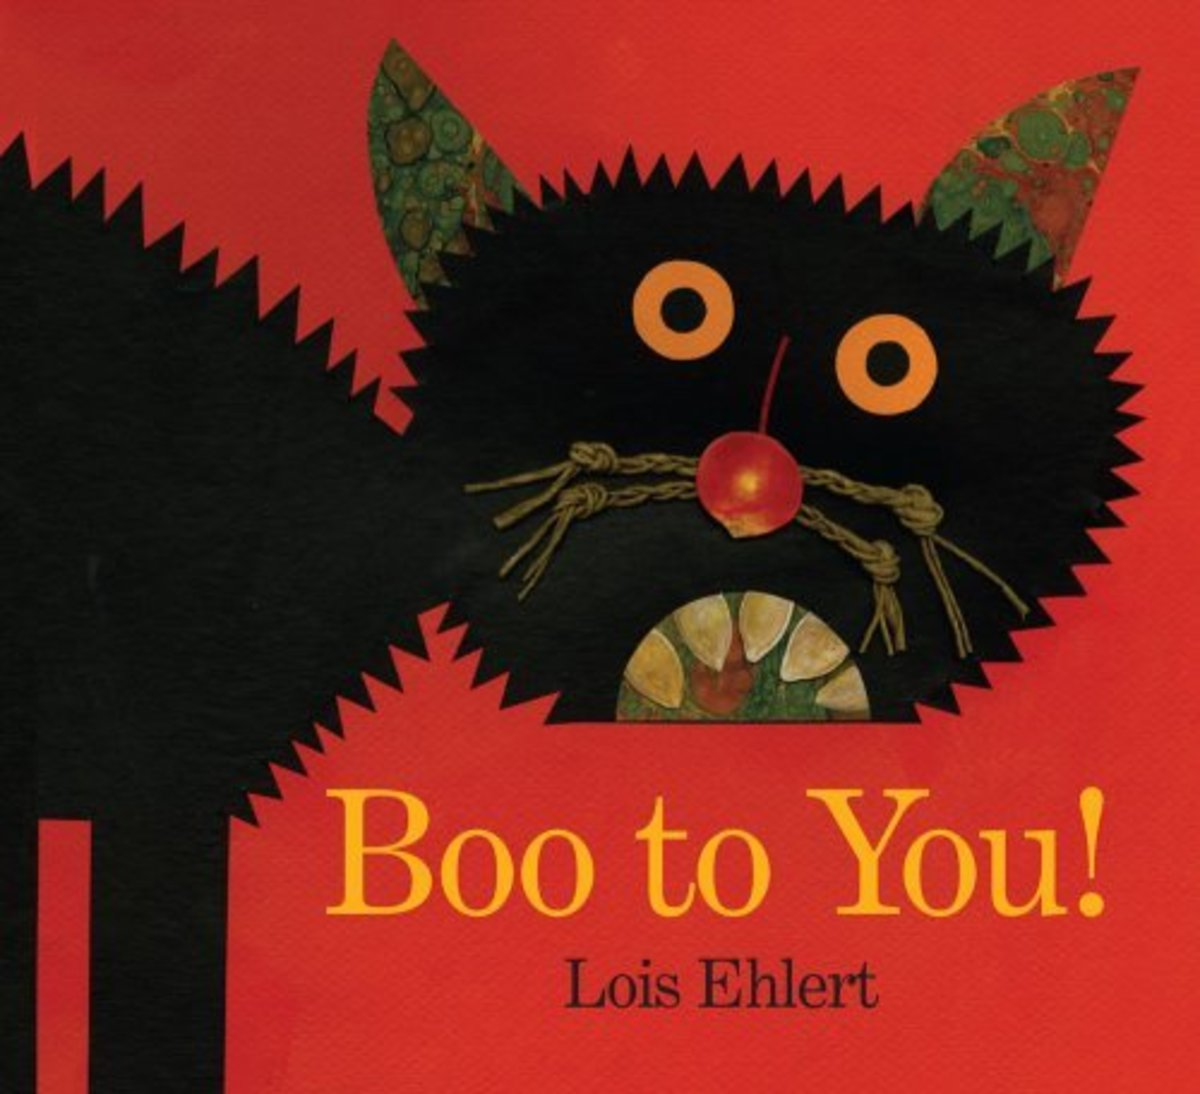 Boo to You by Lois Ehlert